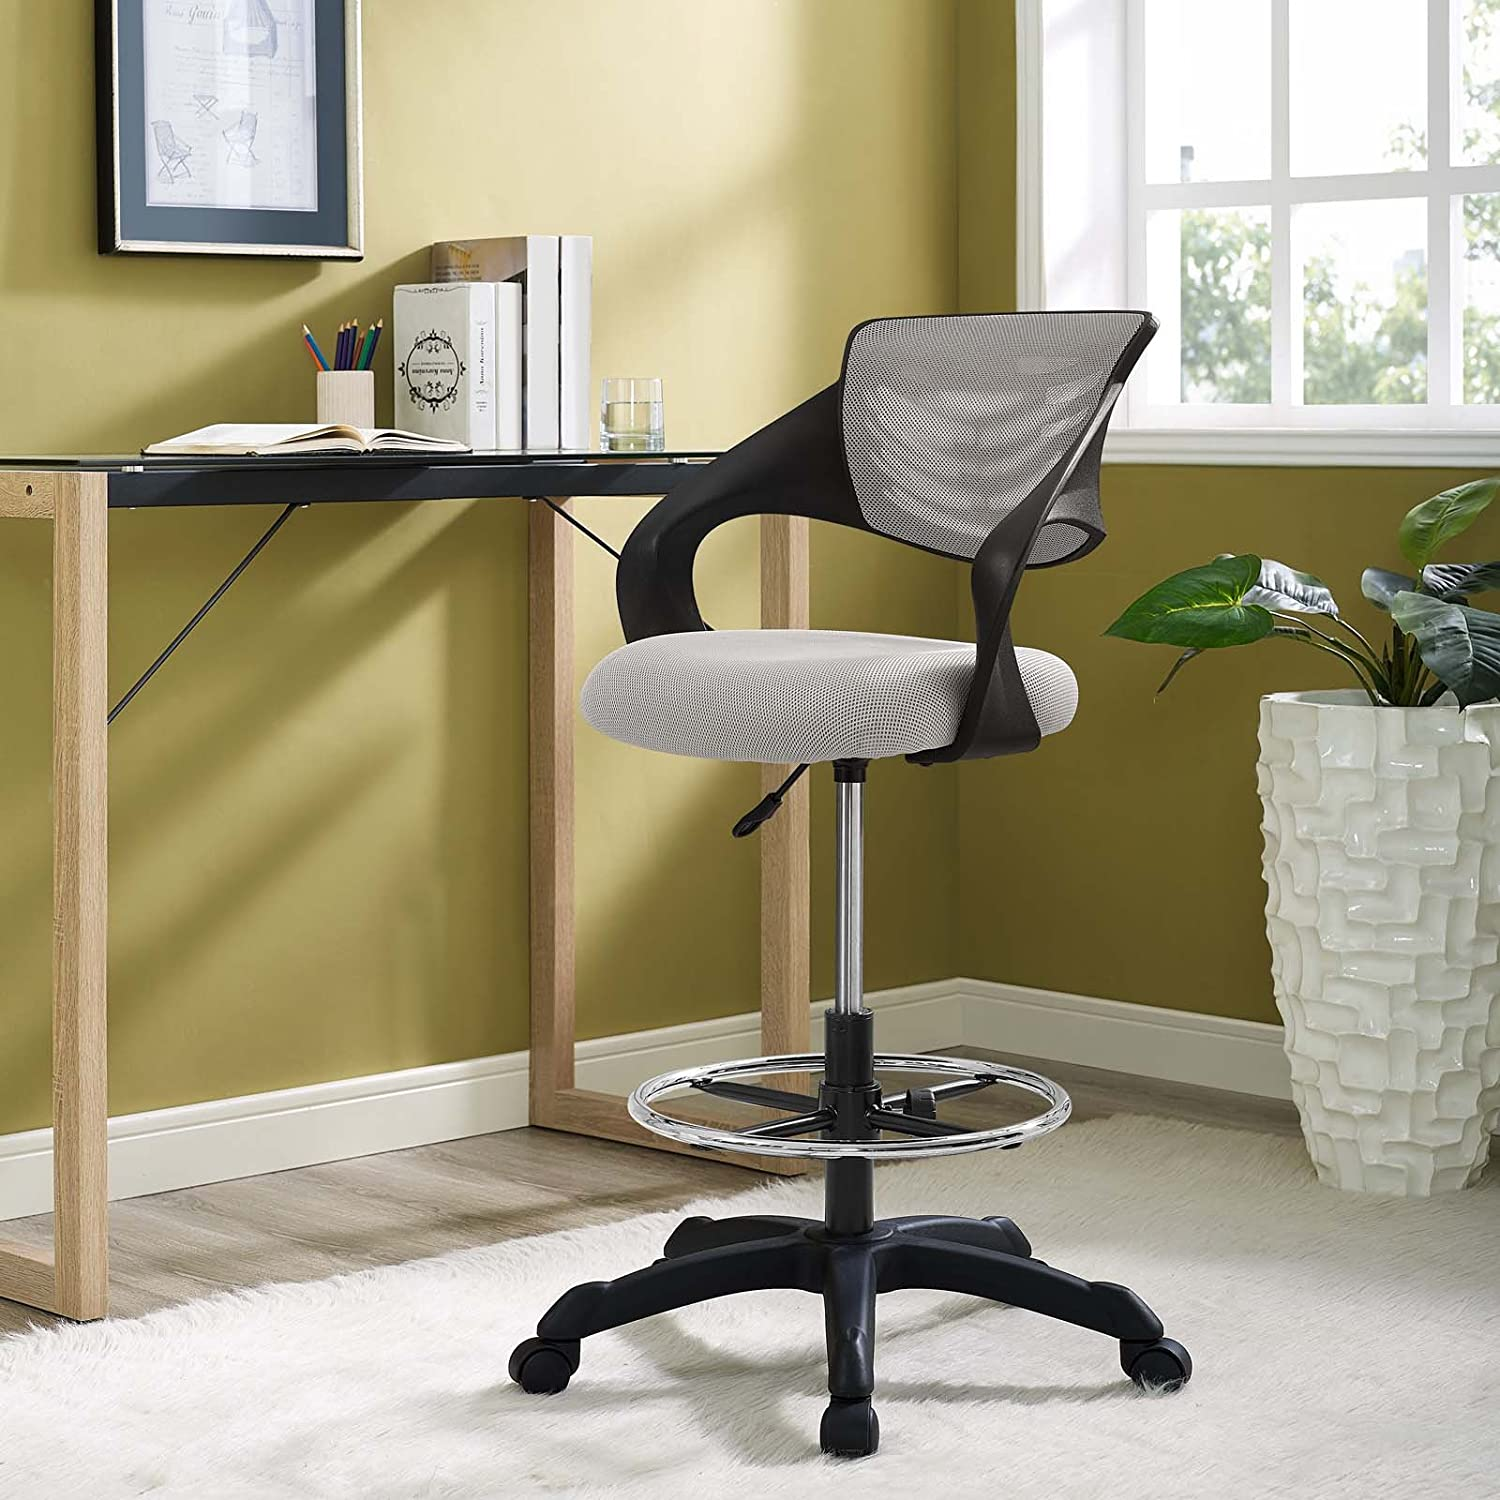 81v5OZeOIcL. AC SL1500 - What Is The Best Office Chair For Short Person With Back Pain - ChairPicks